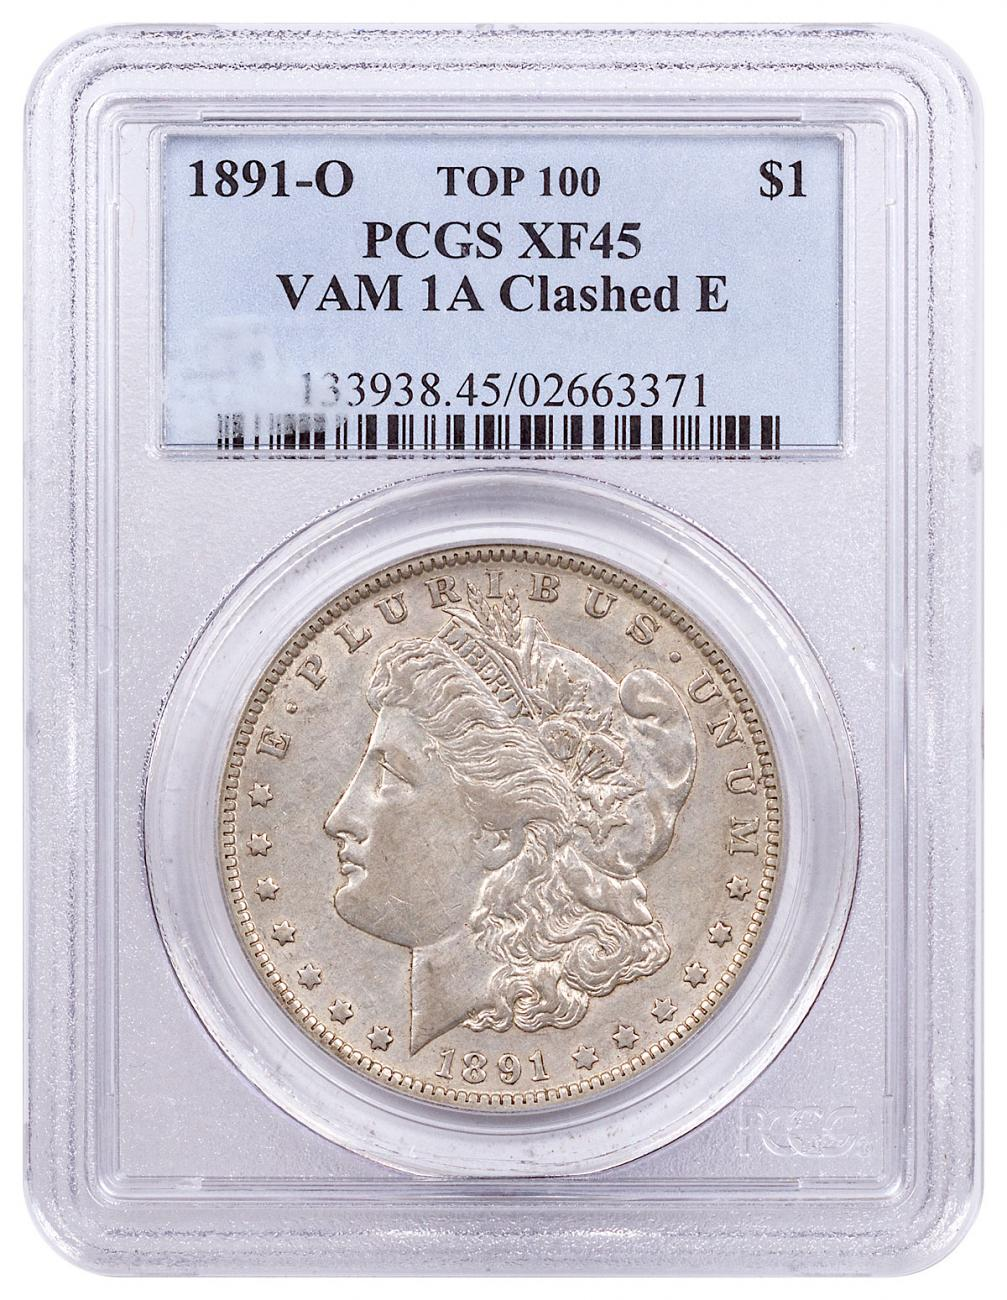 1891-O Morgan Silver Dollar Top 100 PCGS XF45 VAM-1A Clashed E